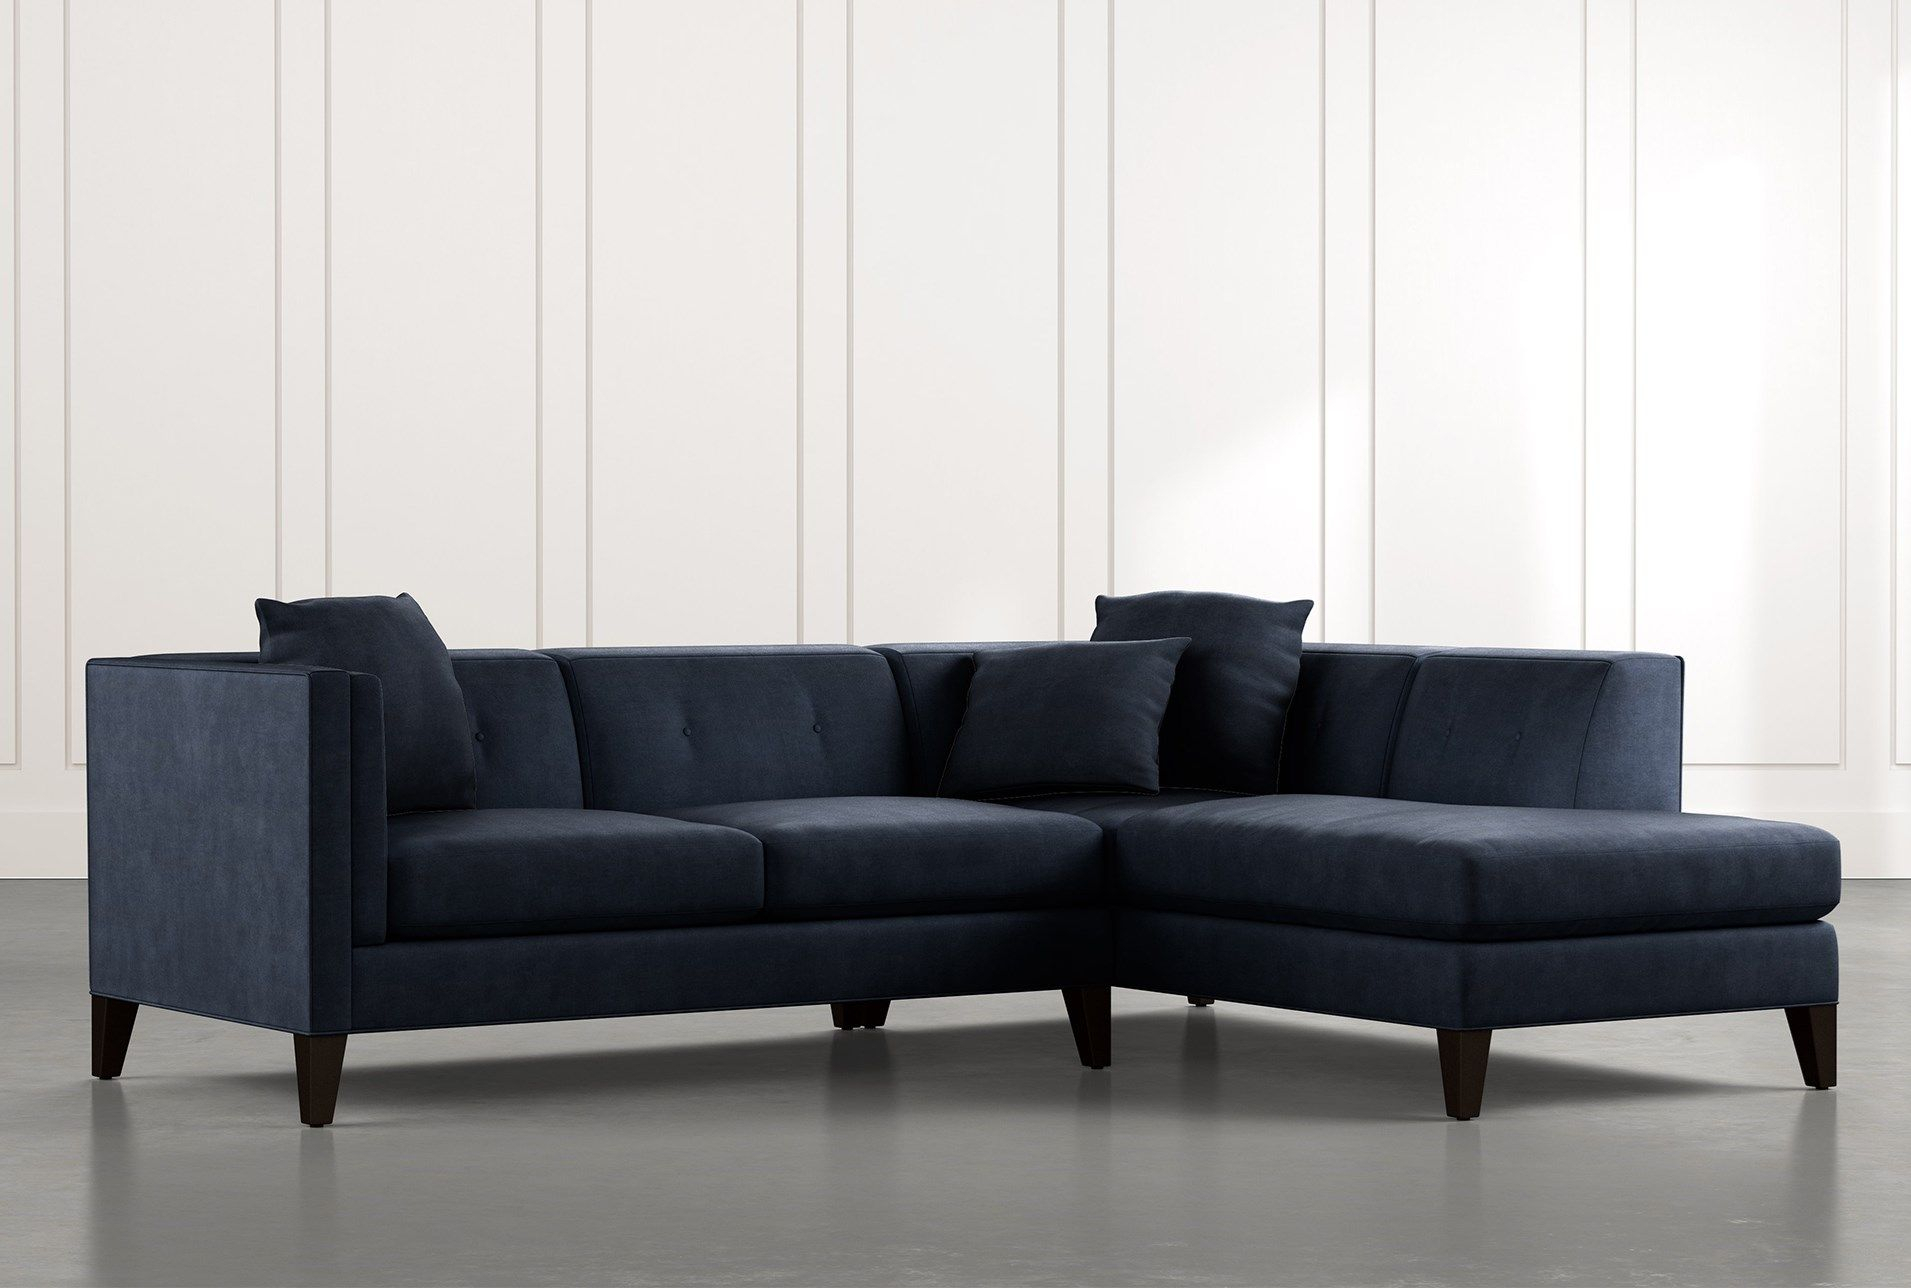 Avery Ii Navy Blue 2 Piece Sectional With Right Arm Facing Regarding Avery 2 Piece Sectionals With Raf Armless Chaise (View 3 of 15)